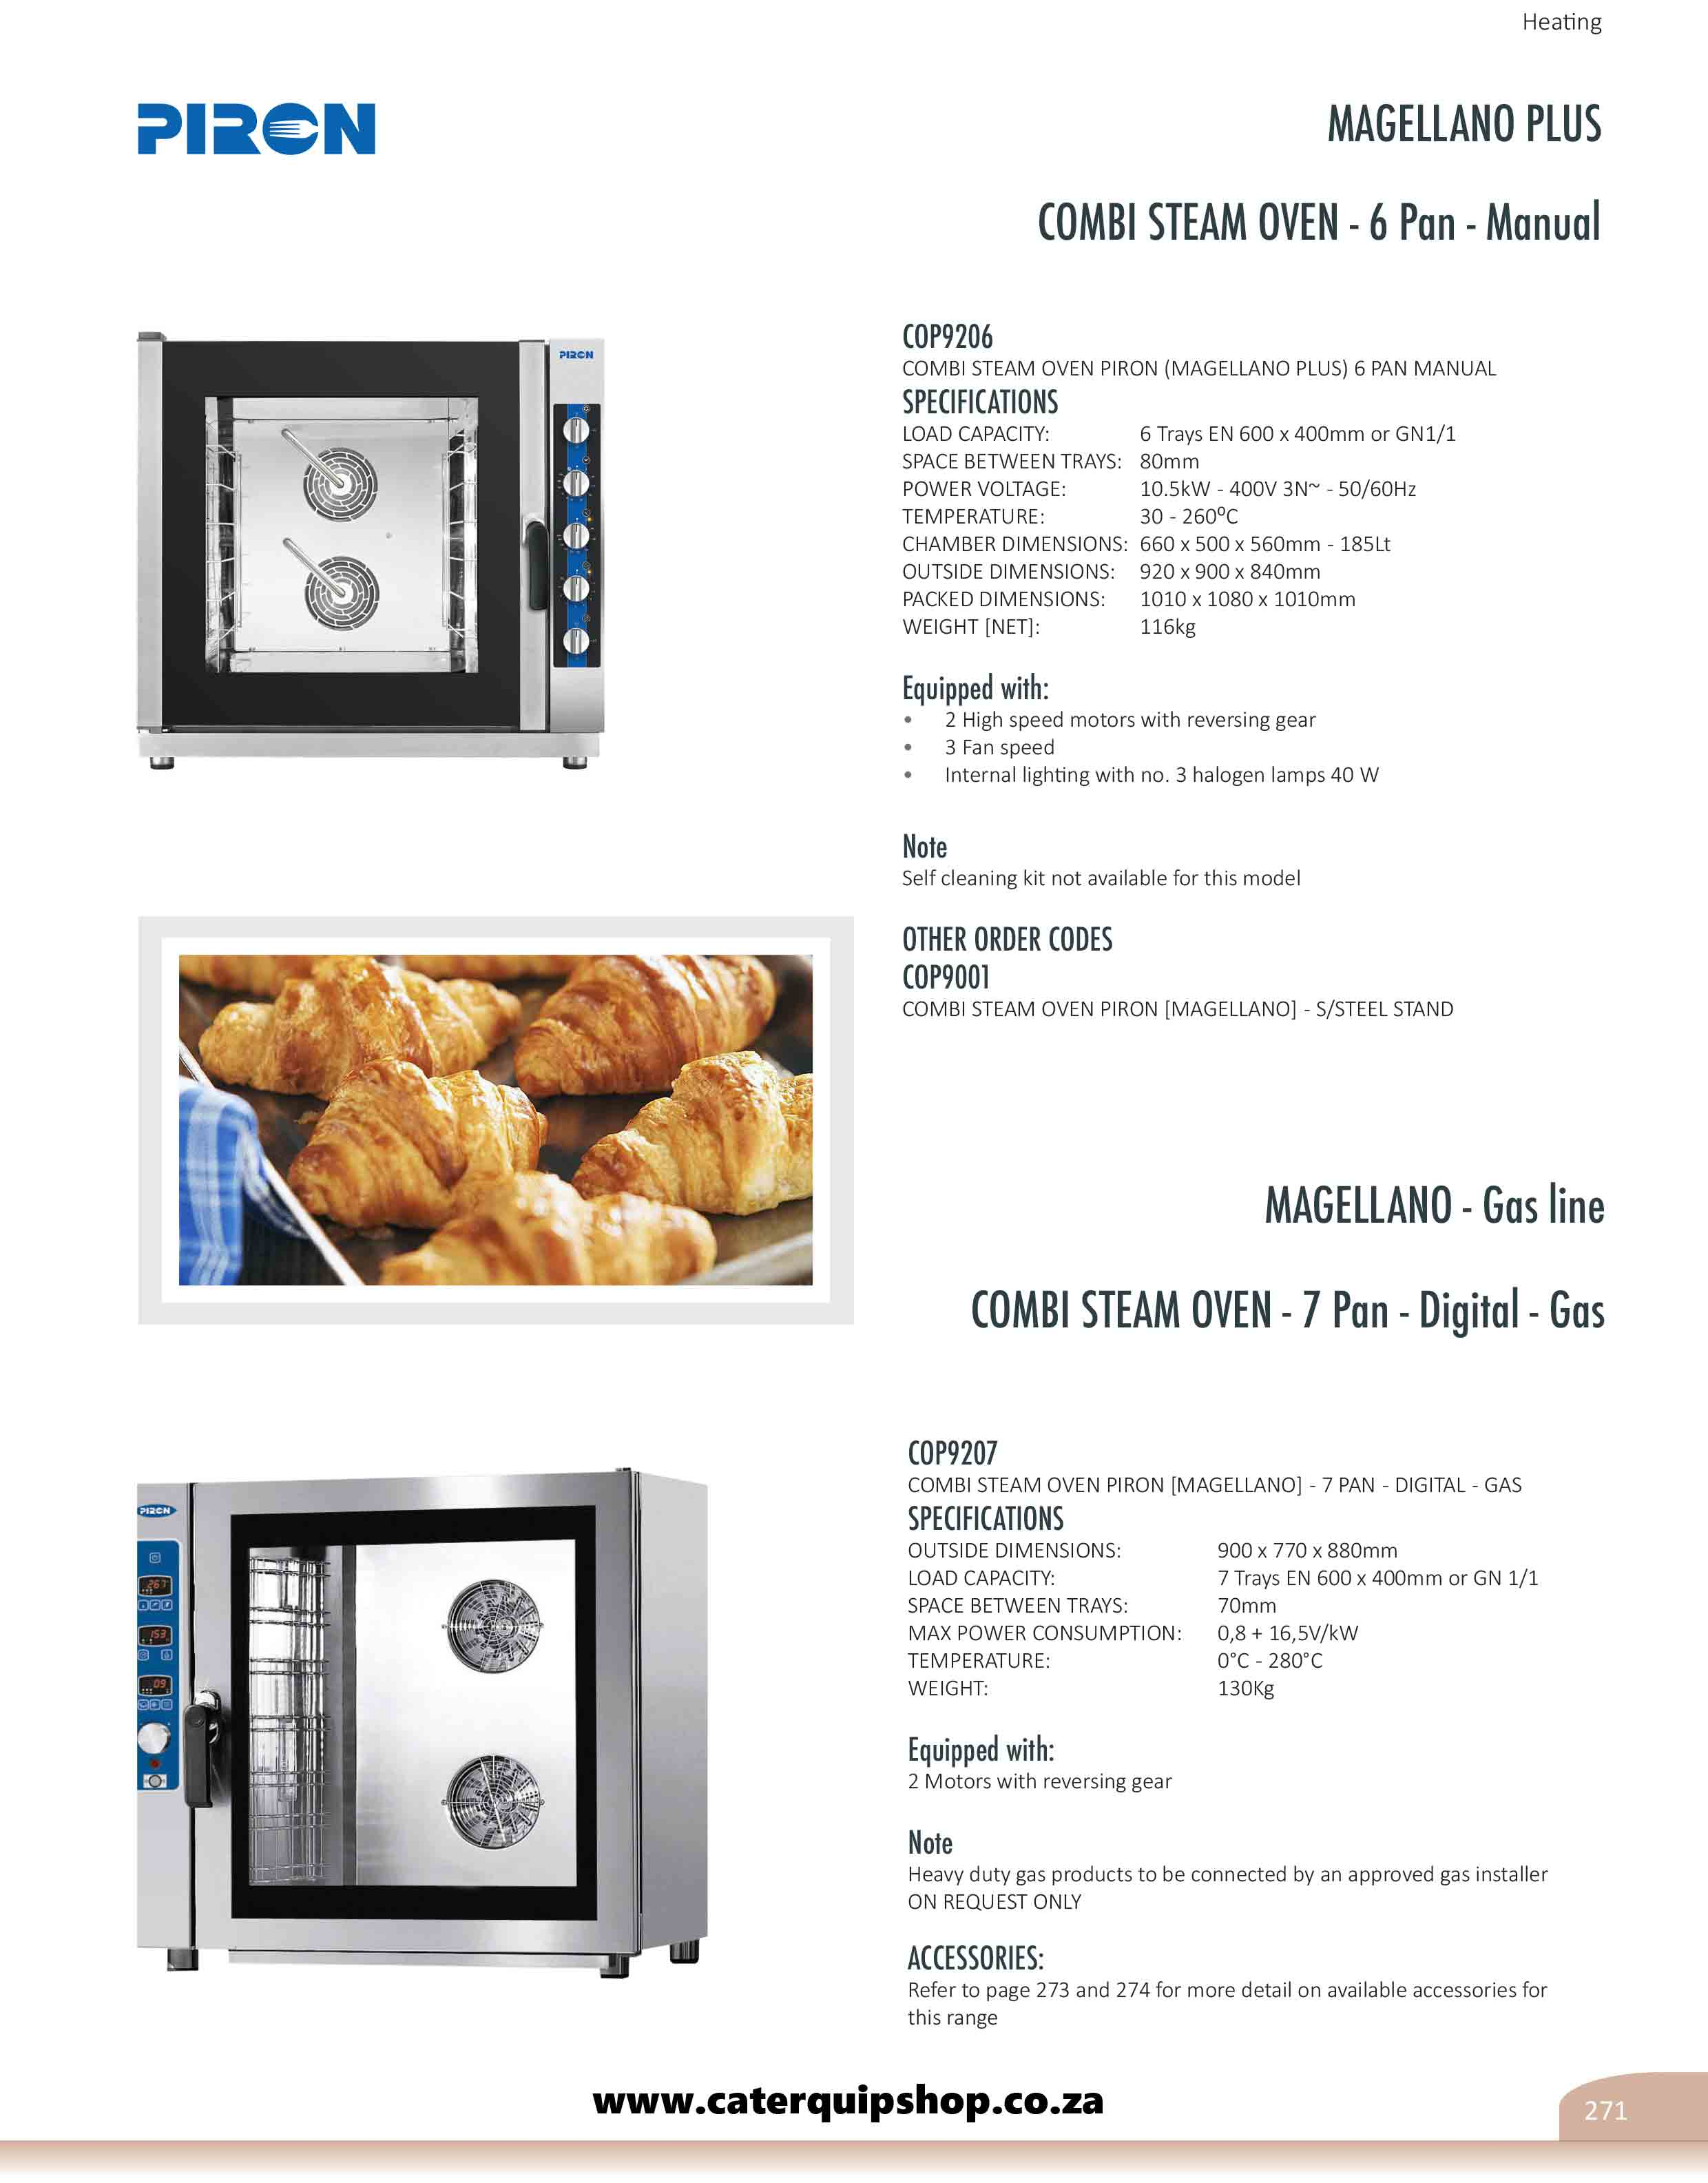 All In One Catering Equipment Home Page Electric 6 24kw Open Radiant Elements 2 1 Gn Oven With 4 Rack